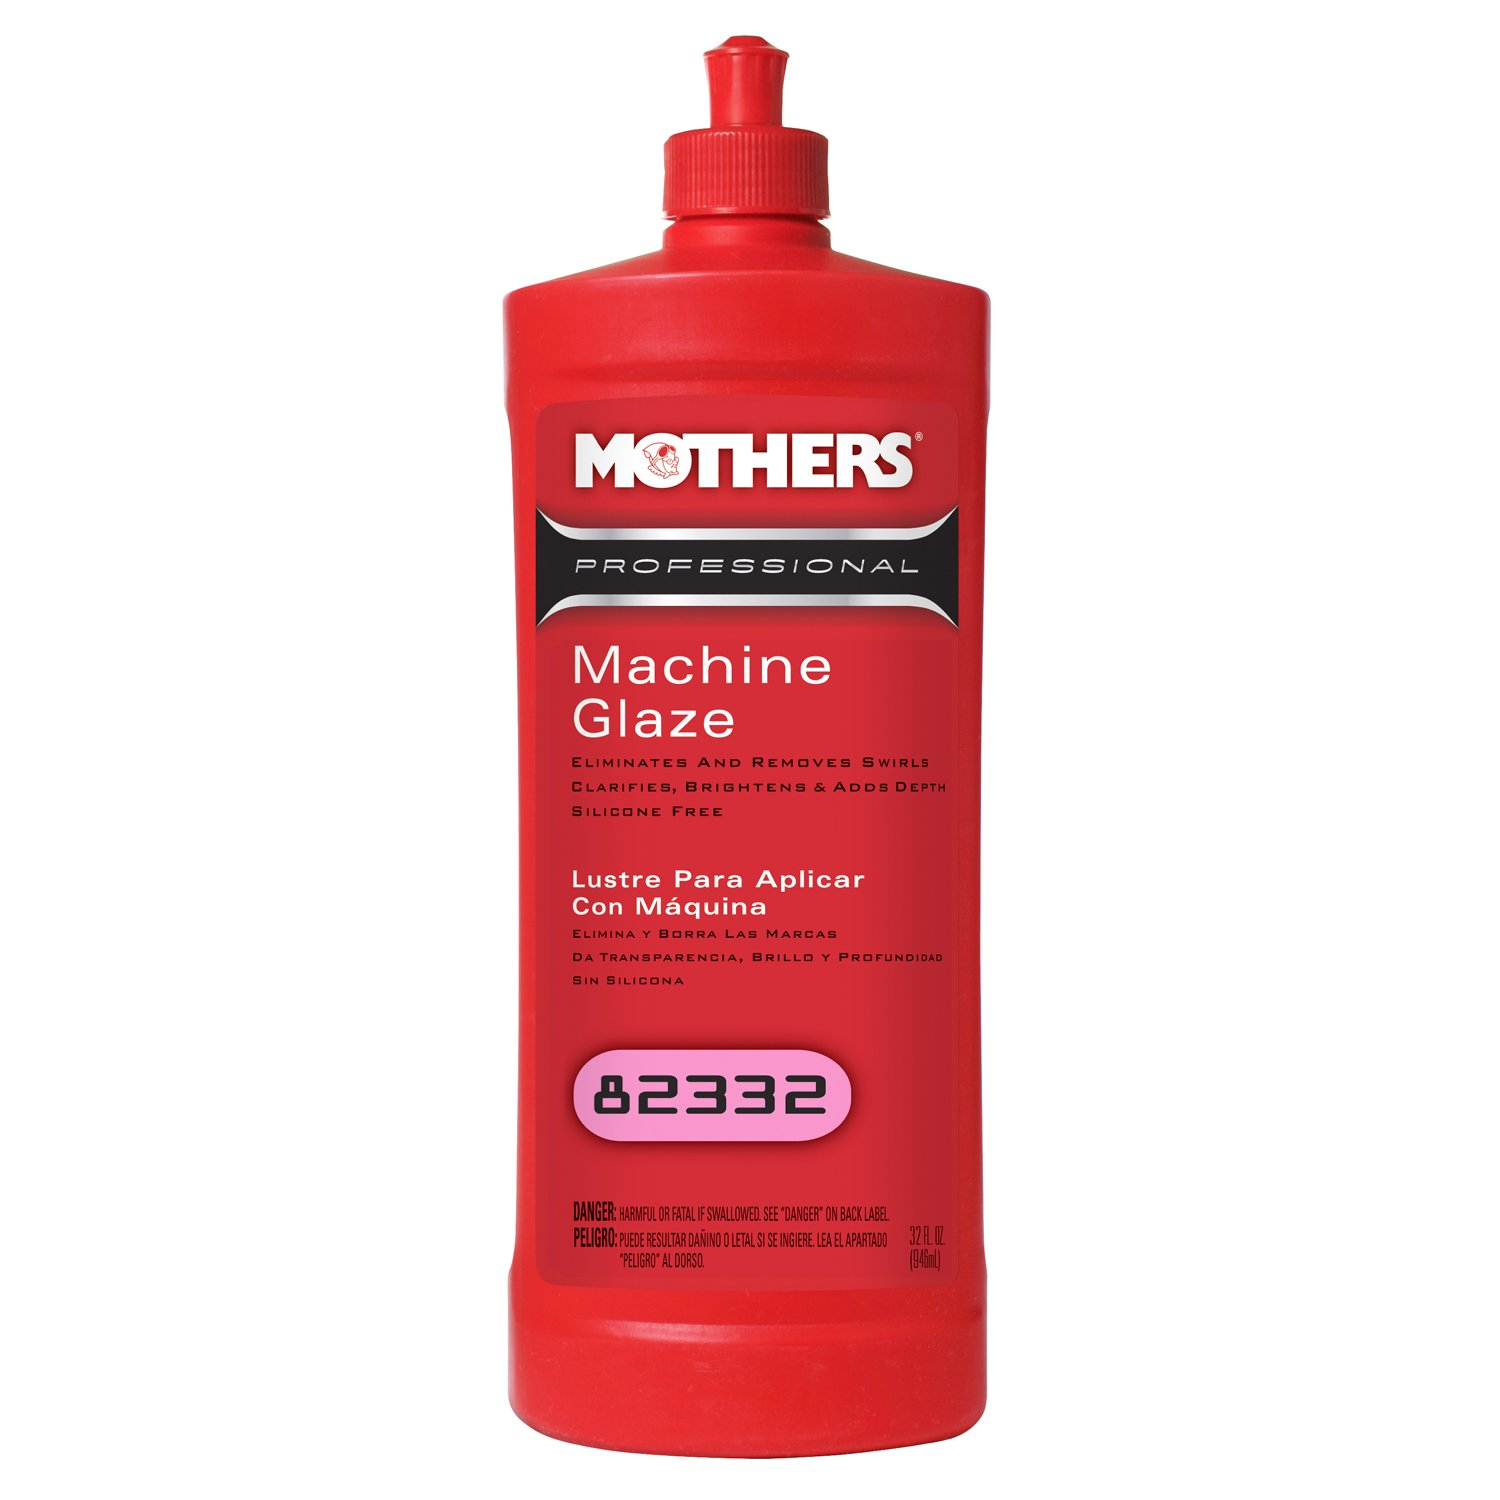 Amazon.com: Mothers 82332 Professional Machine Glaze - 32 oz.: Automotive